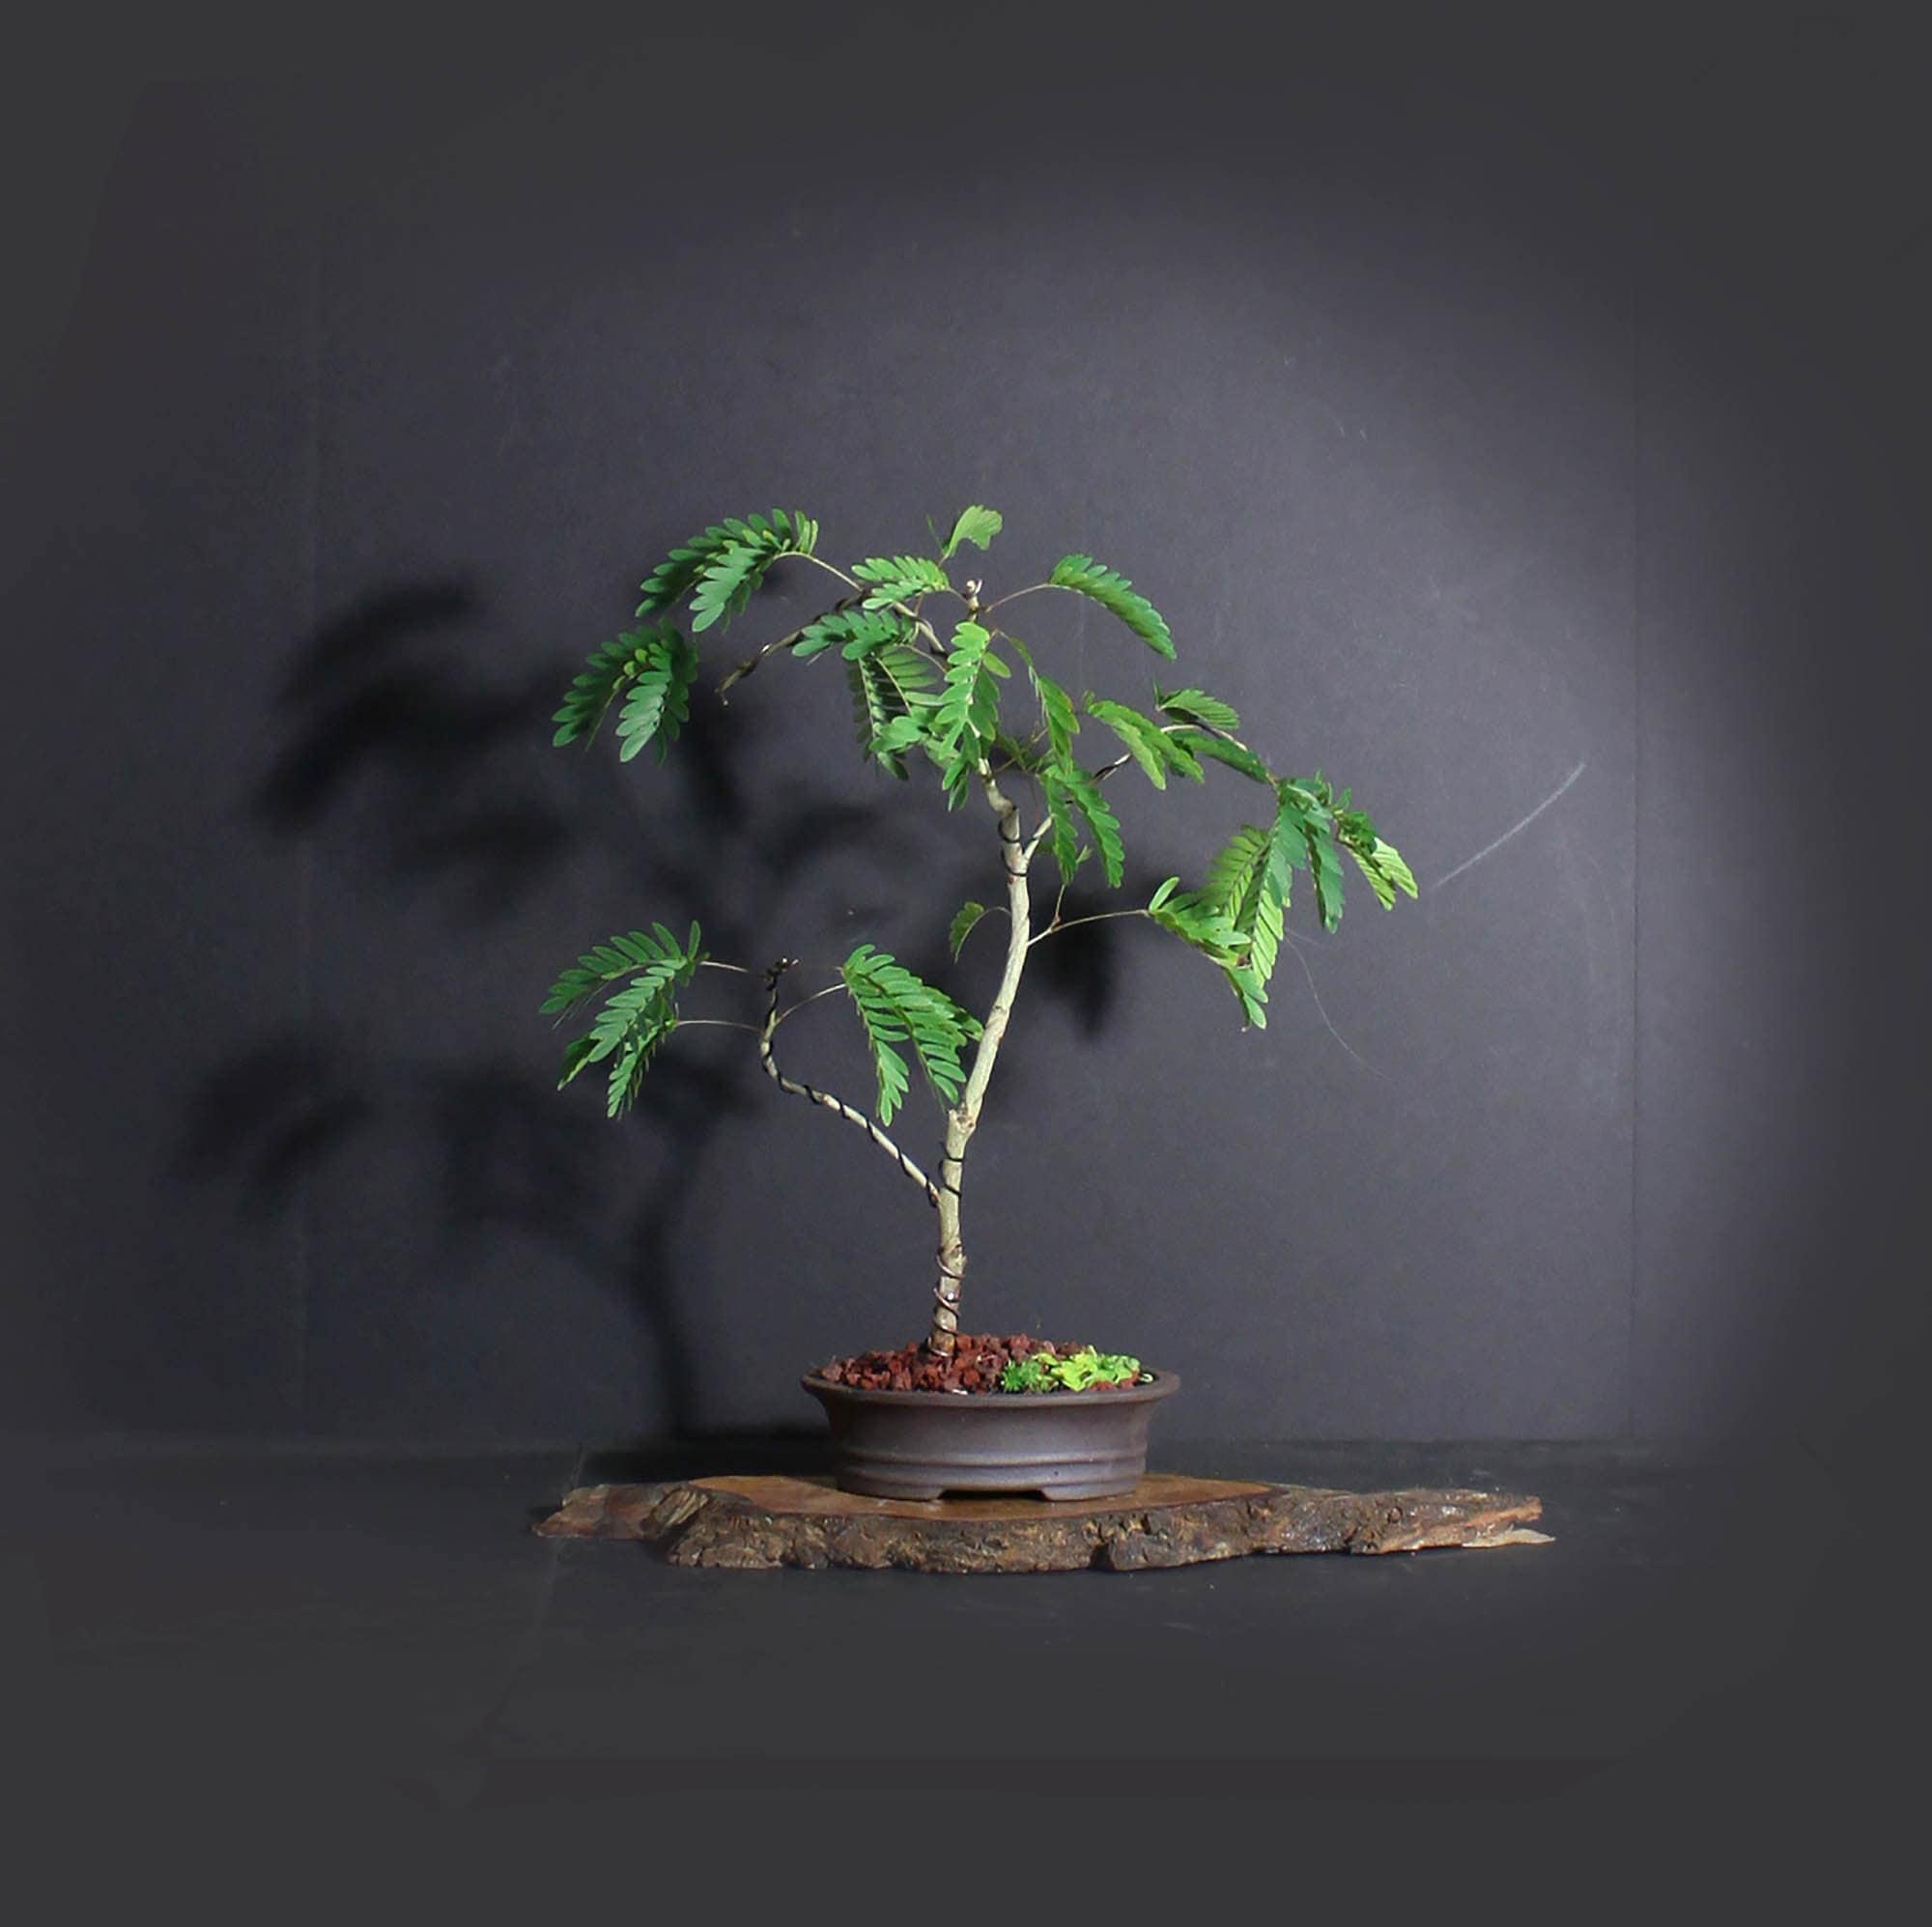 Red Powder Puff Bonsai Tree Blooming Tropics Collection From Livebonsaitree